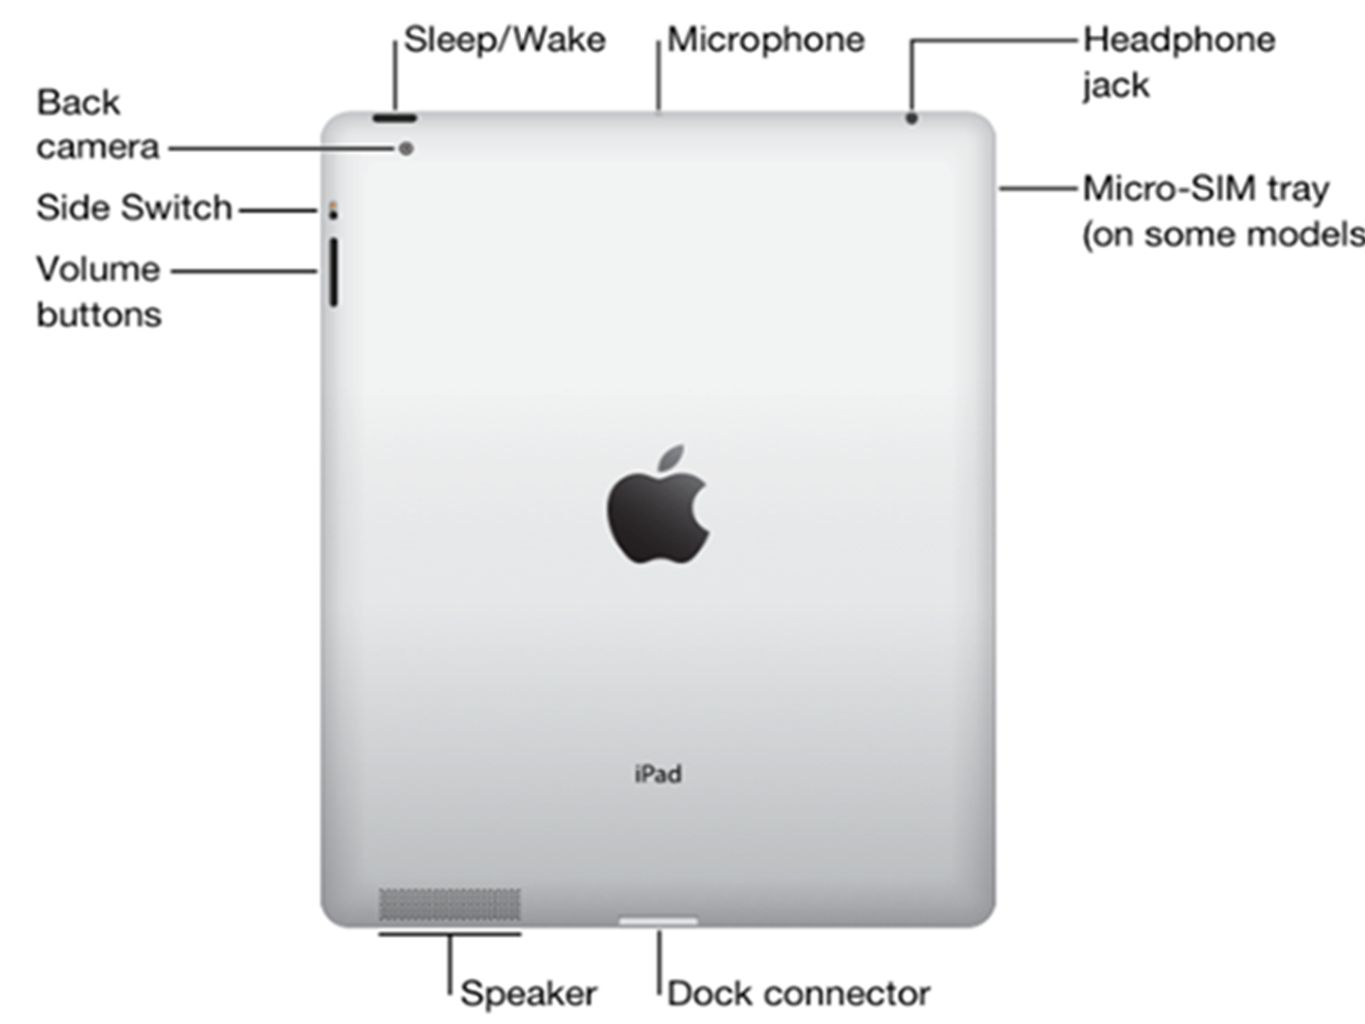 Mini Ipad Buttons Diagram Reinvent Your Wiring 1 Trusted Diagrams U2022 Rh Radkan Co Antenna Location